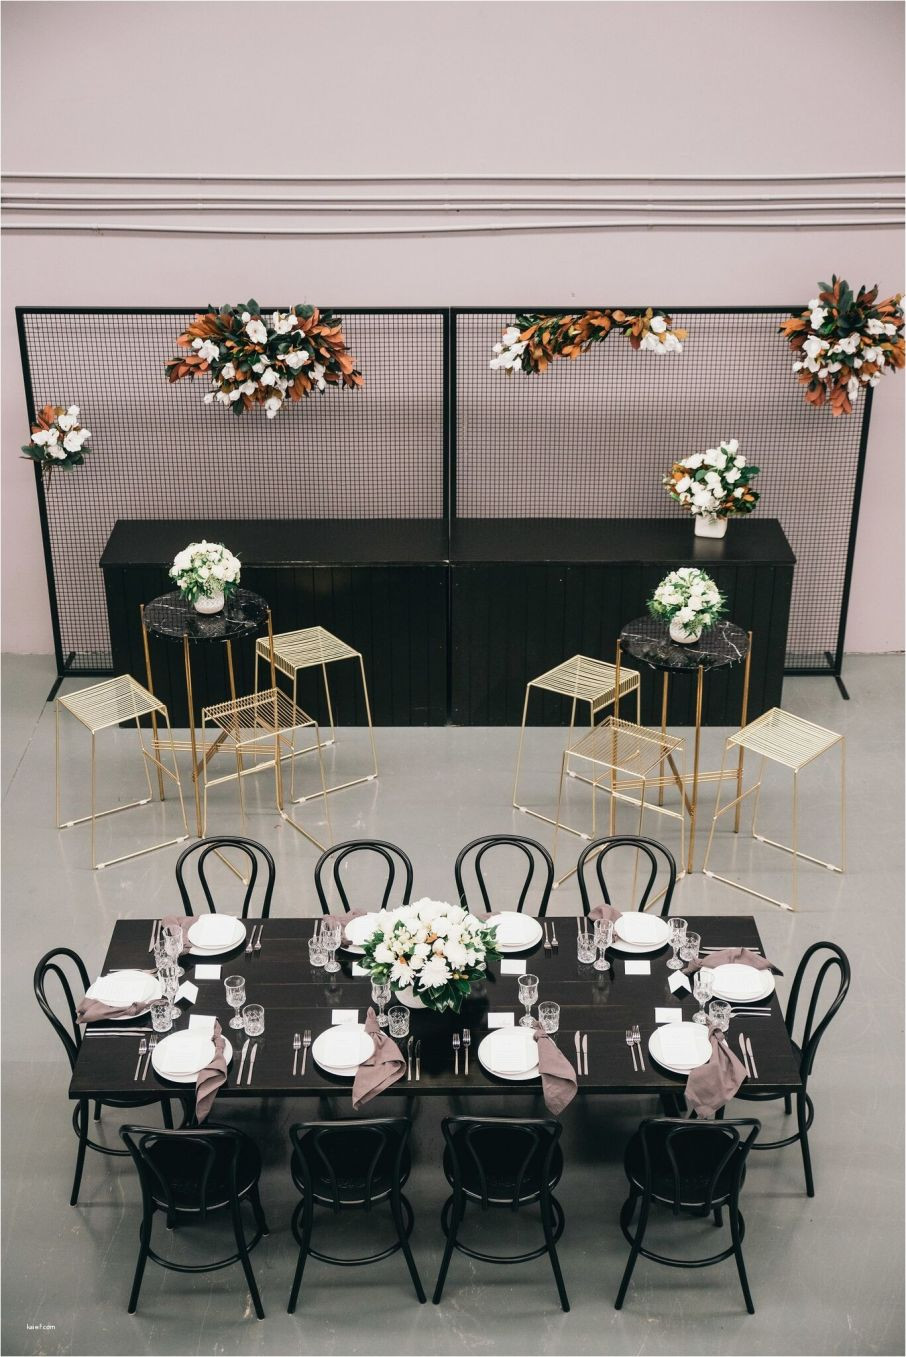 rent glass vases for wedding of gorgeous 2018 warehouse open day wrap up at hampton event hire as pertaining to gorgeous 2018 warehouse open day wrap up at hampton event hire as well as rent wedding tables and chairs landscapes